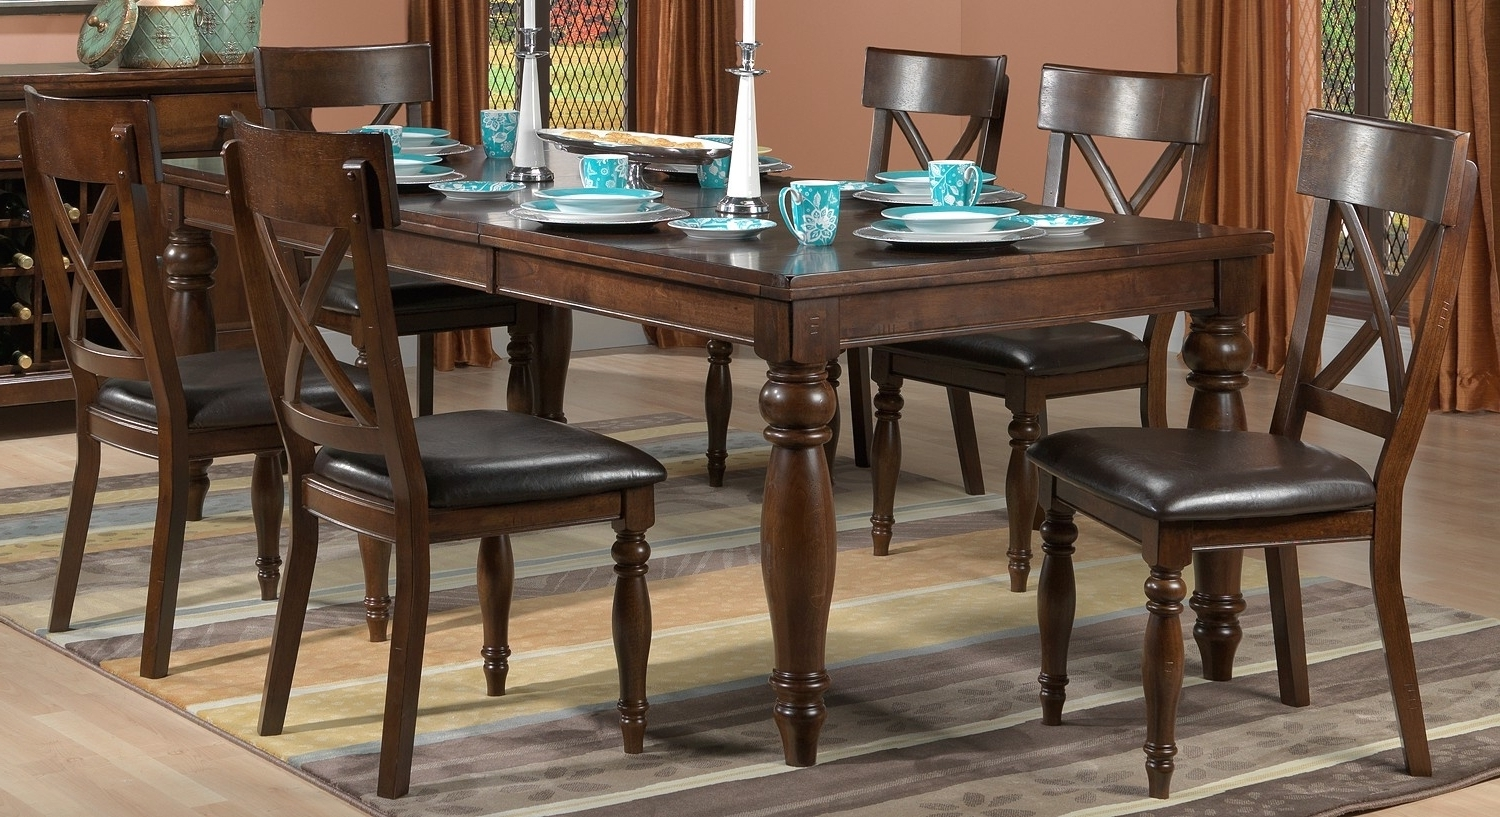 Famous Dining Room Furniture Kingston Ontario – Dining Tables Ideas Pertaining To Kingston Dining Tables And Chairs (View 8 of 25)